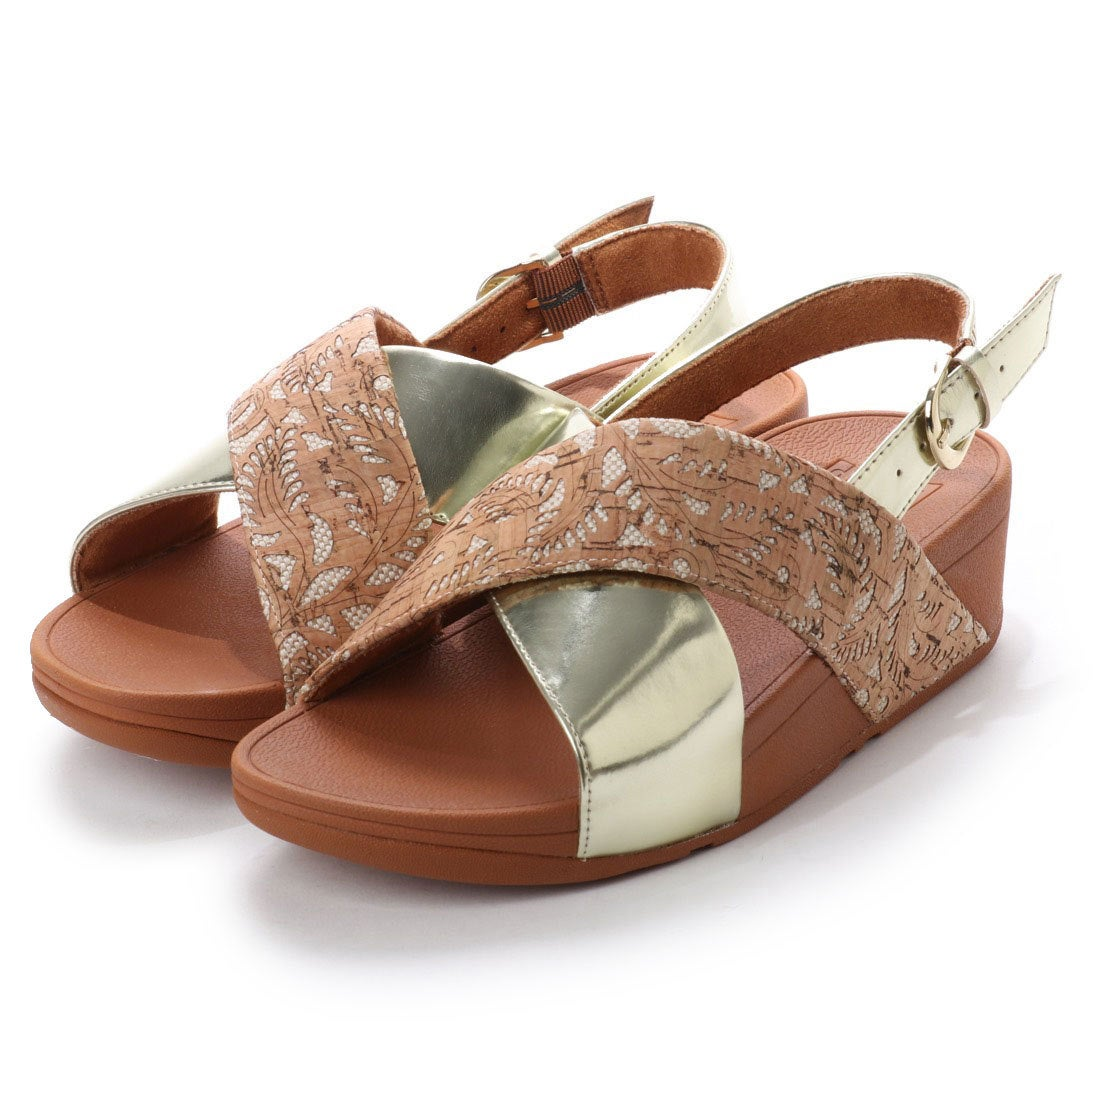 d7abb3c83cfa fitflop フィットフロップ FitFlop LULU CROSS BACK-STRAP SANDALS - MIRROR   CORK (Cork Gold  Mirror) -アウトレット通販 ロコレット (LOCOLET)